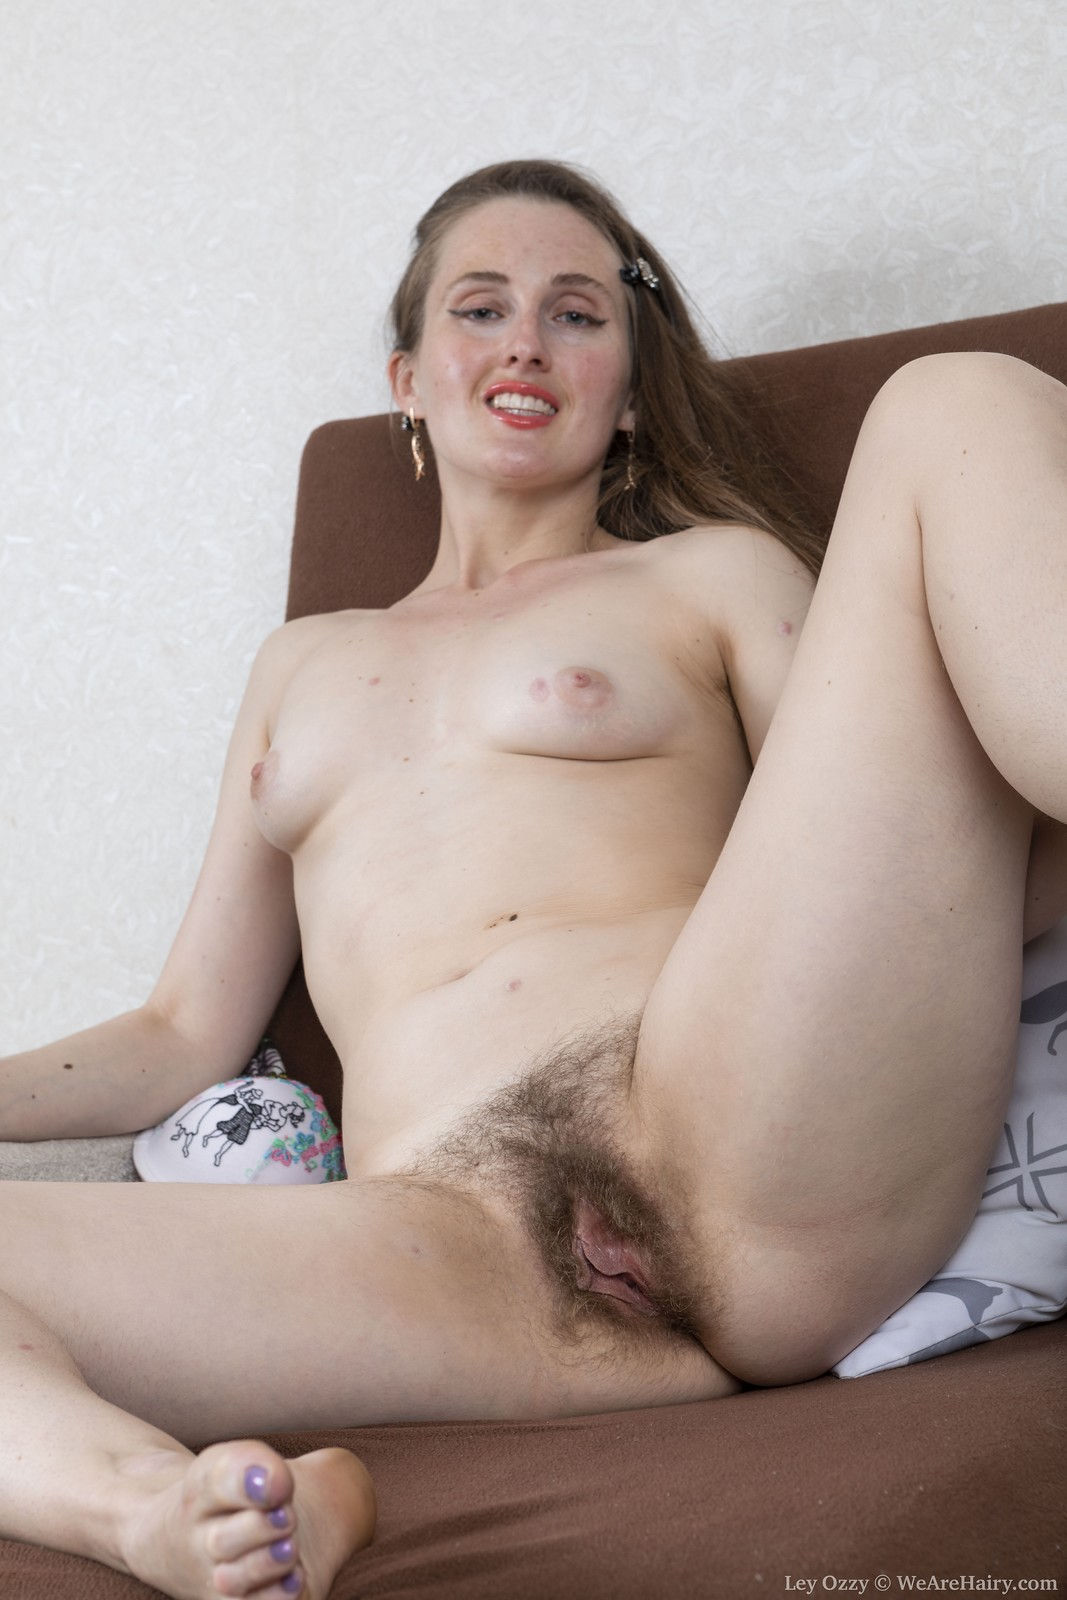 Amateur sex model Ley Ozzy spreading legs to show hairy pussy and big clit